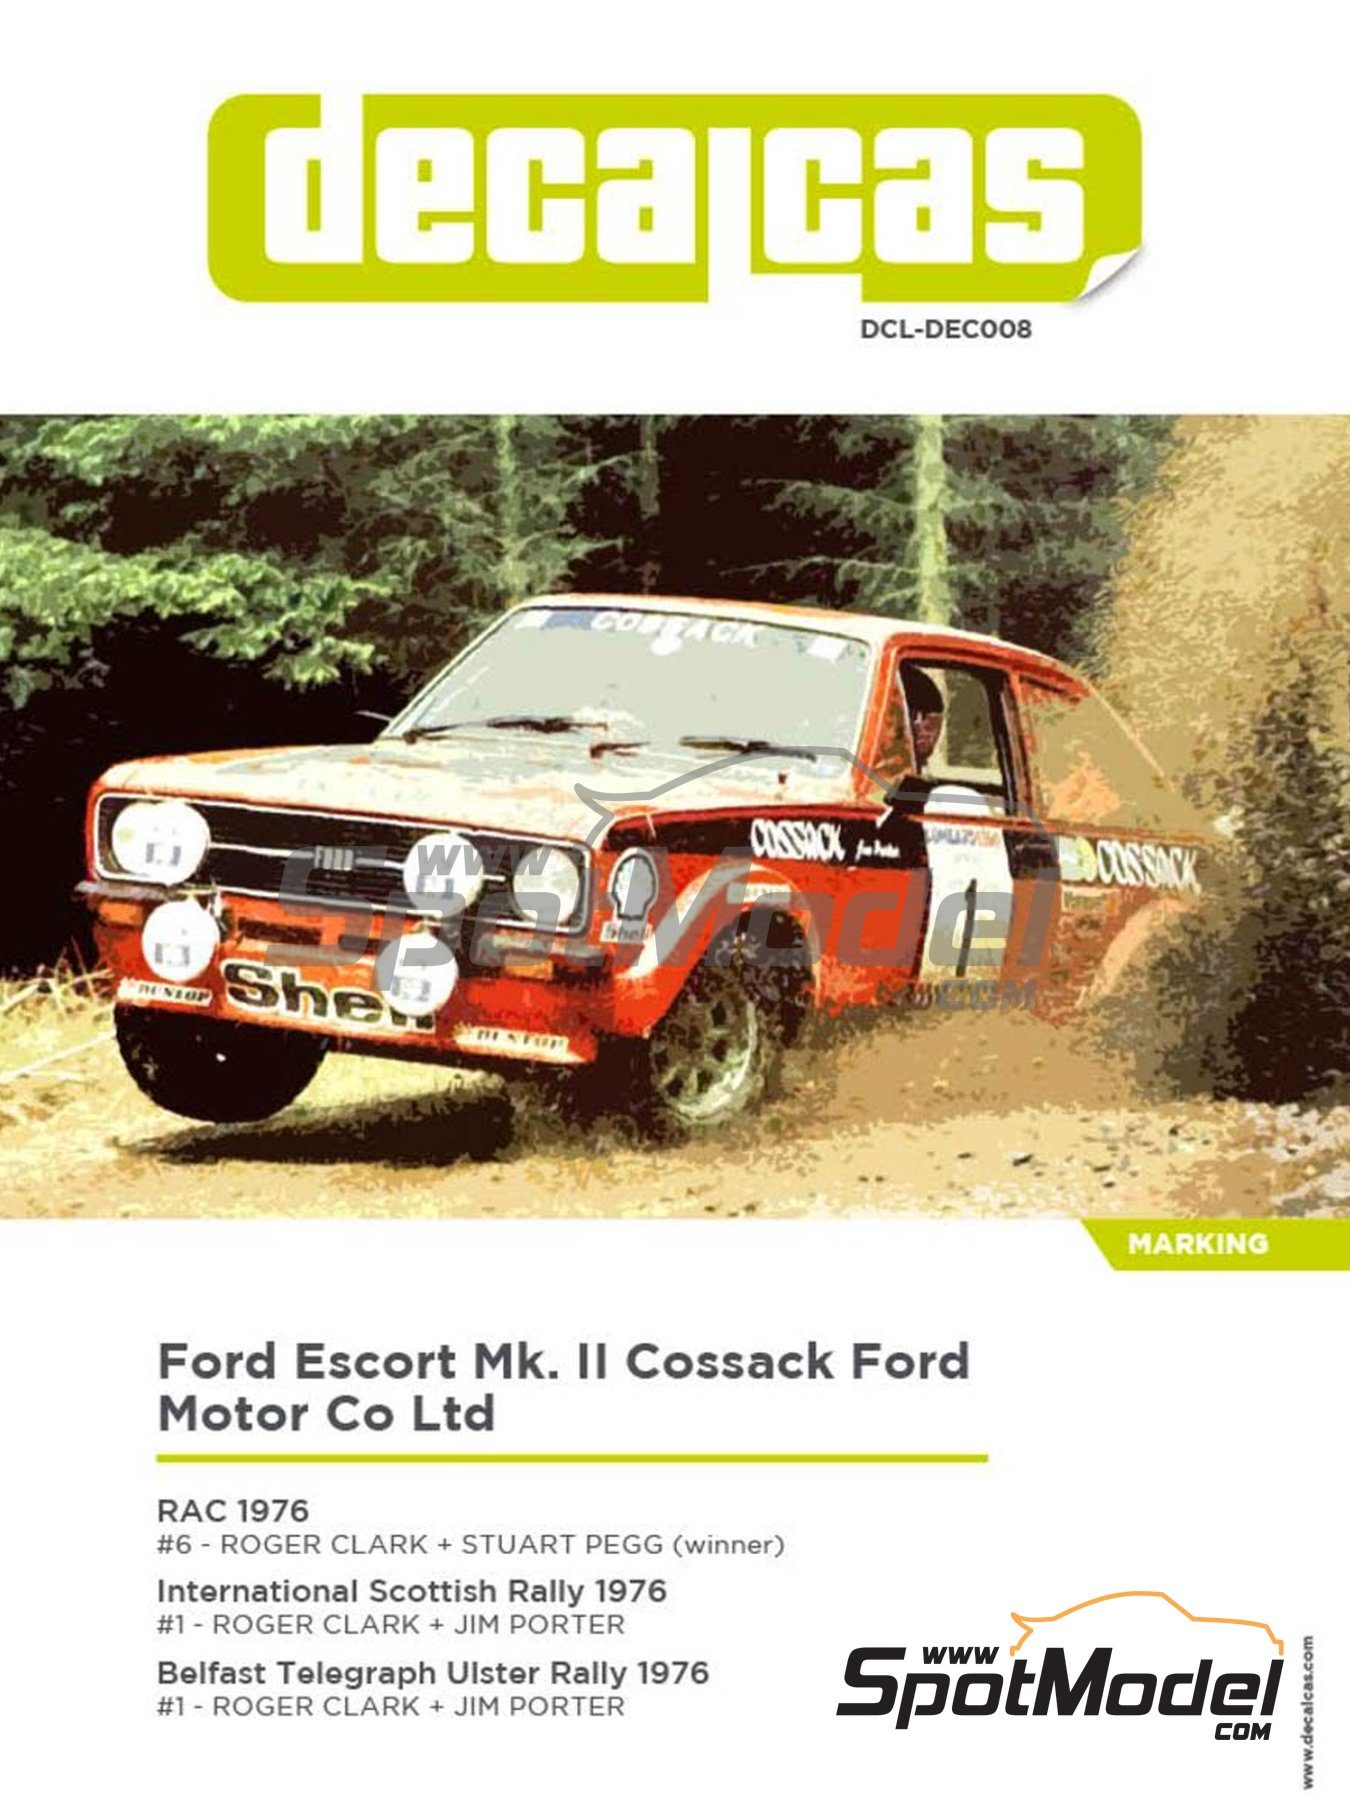 Ford Escort Mk. II Cossack Ford Motor Co Ltd - Rally de Inglaterra RAC, Rally Internacional de Escocia, Rally Belfast Telegraph Ulster 1976 | Decoración en escala 1/24 fabricado por Decalcas (ref. DCL-DEC008) image